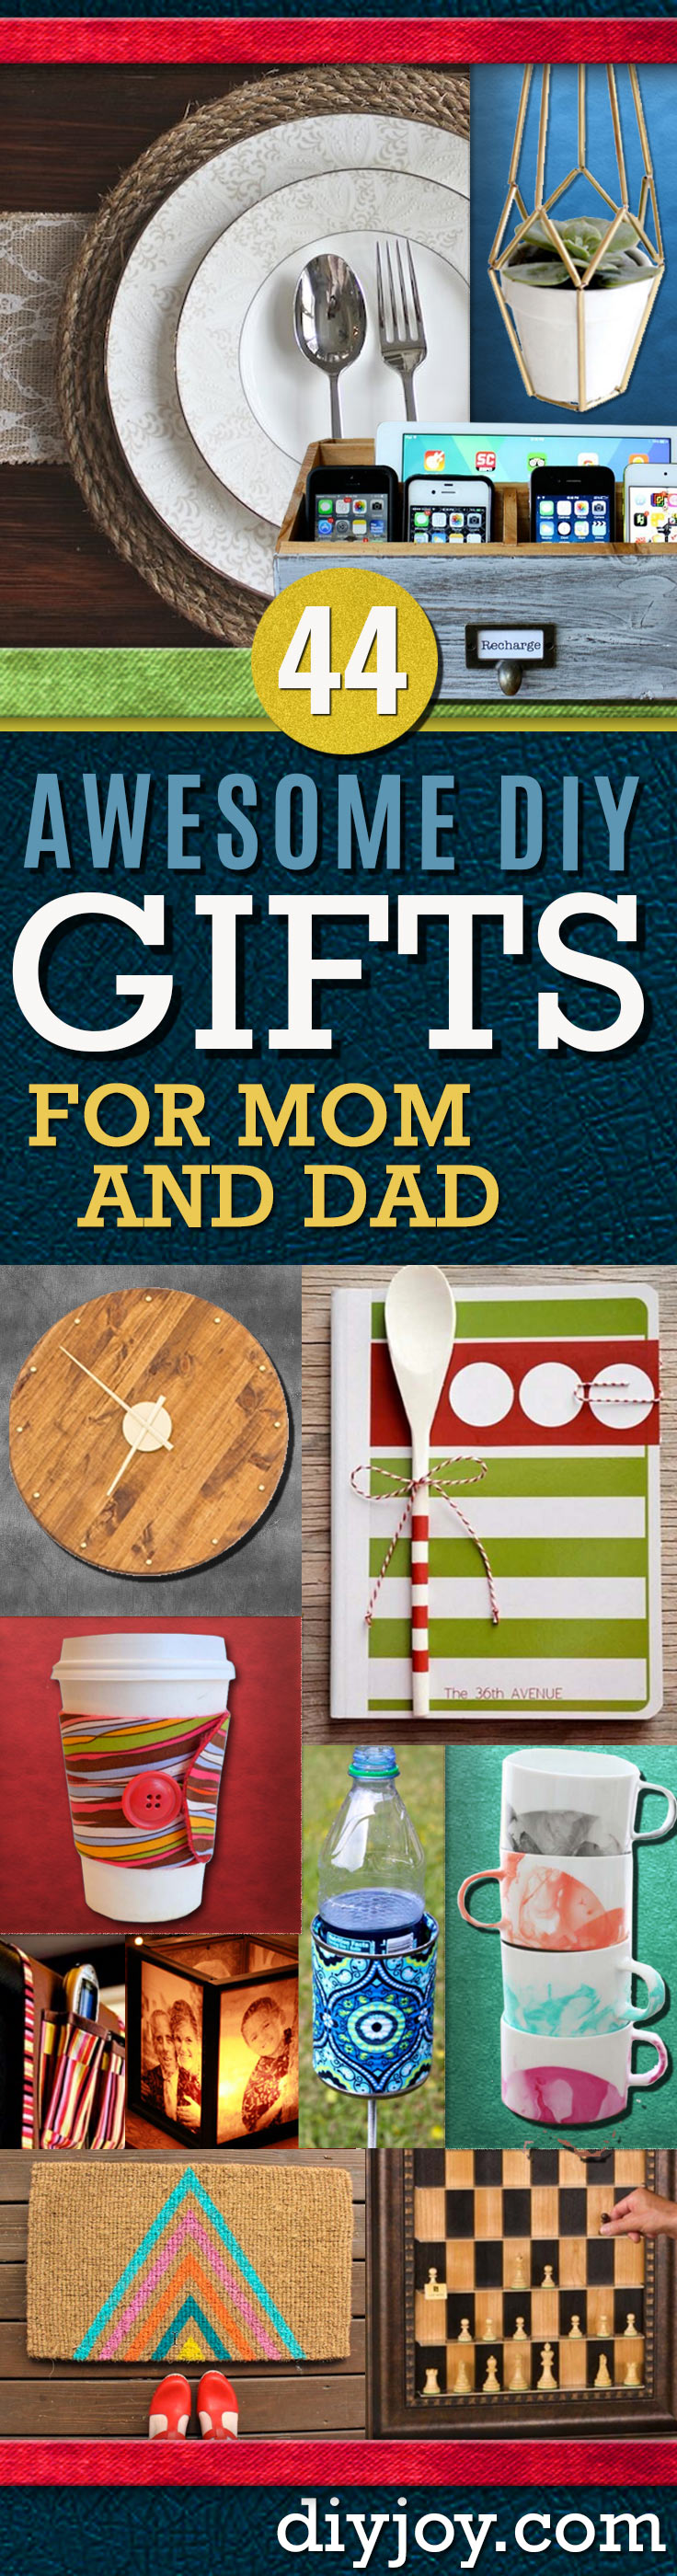 DIY Gifts for Mom and Dad - Homemade Christmas Gift Ideas for Your Parents. Cool